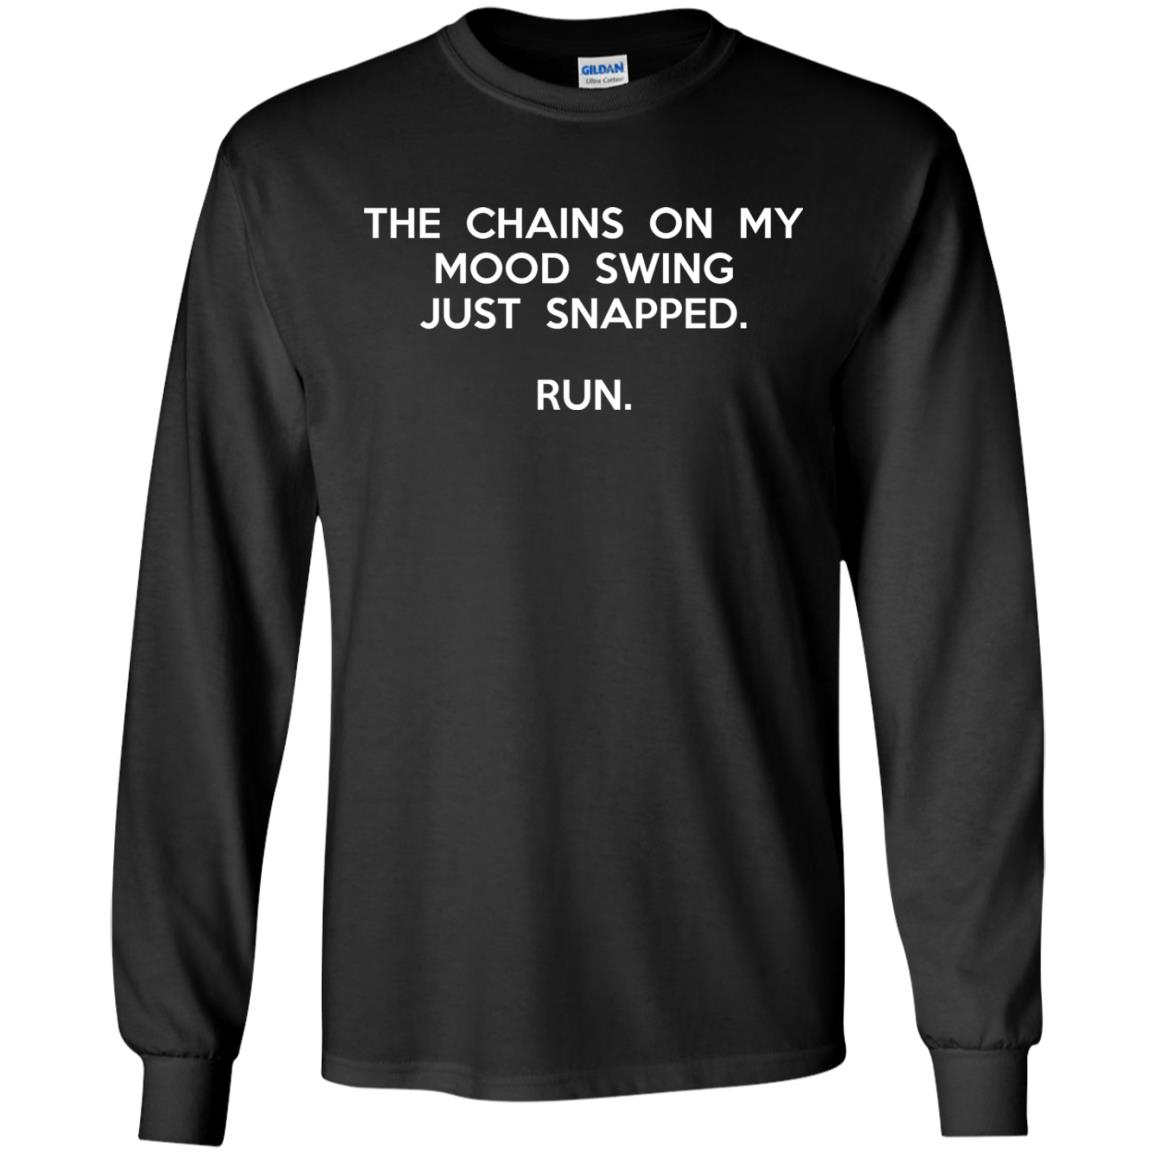 image 2939 - The chains on my mood swing just snapped shirt